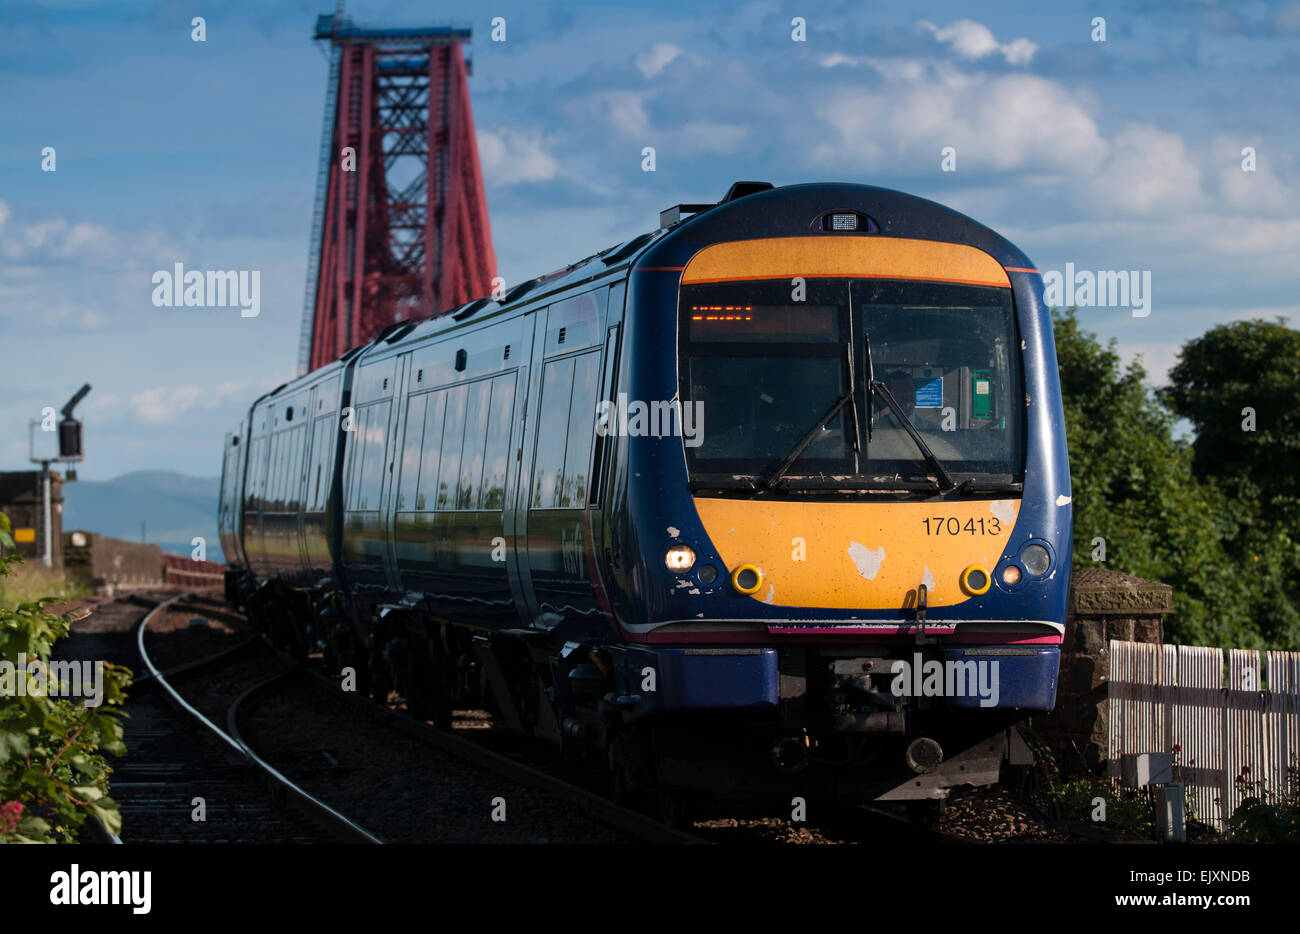 A Scotrail passenger train crosses the Forth Rail Bridge on the way from Edinburgh to Fife.  picture by Alex Hewitt - Stock Image